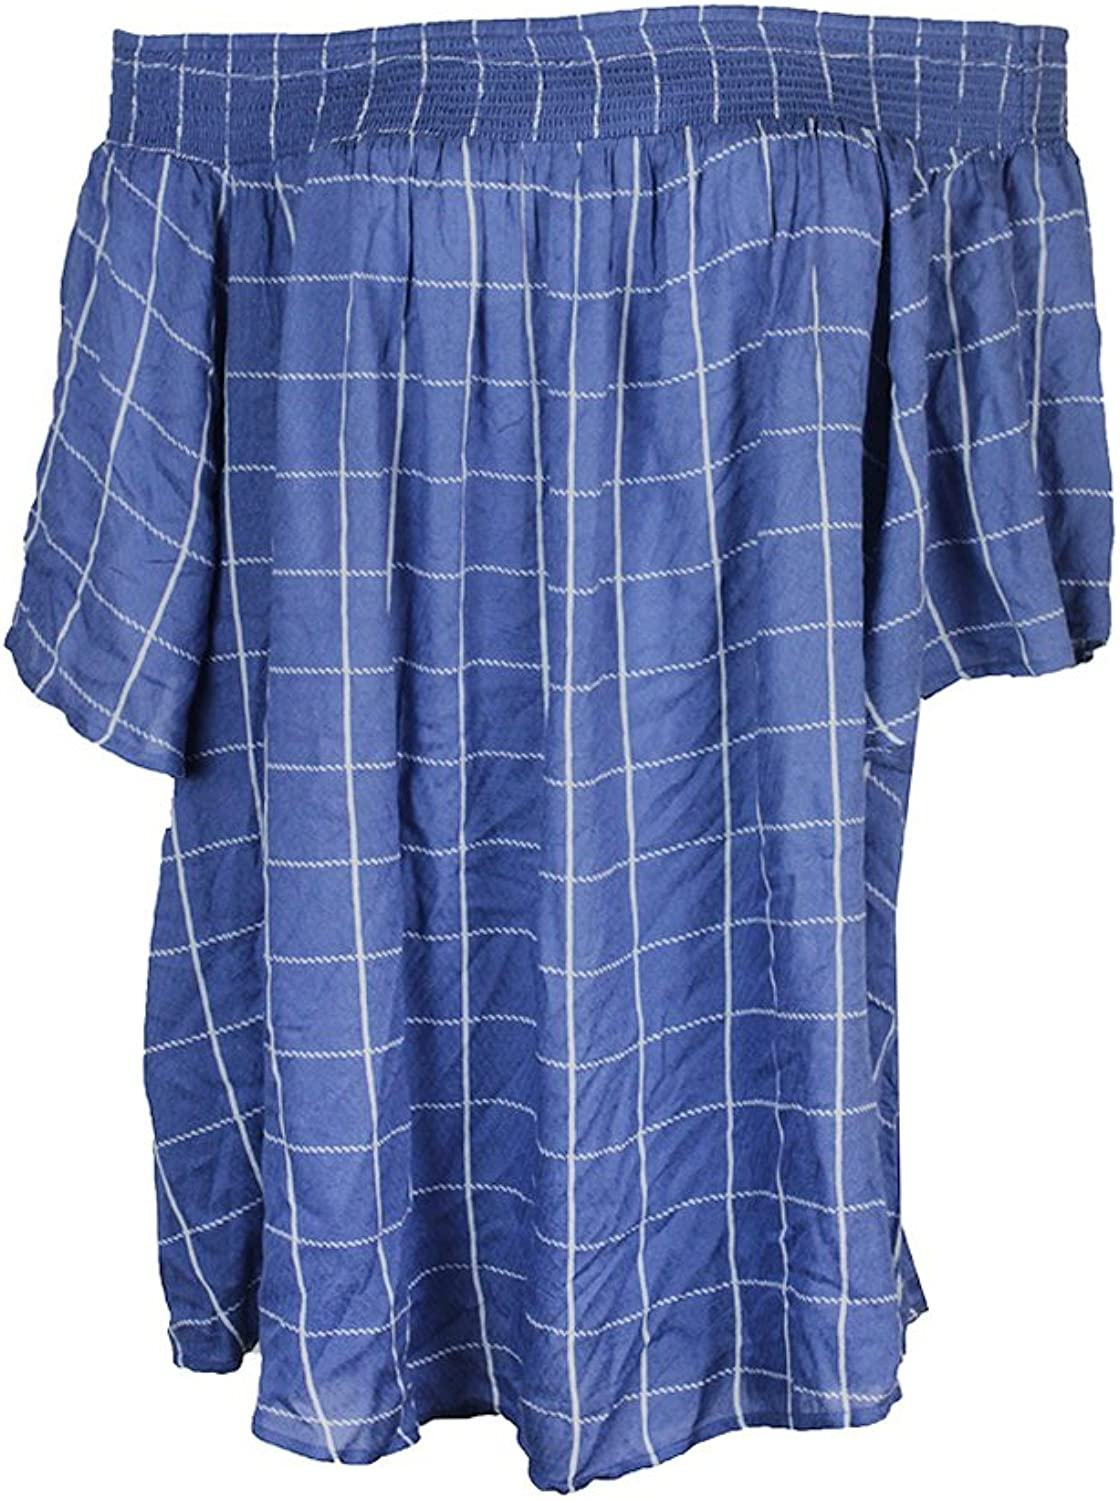 Style & Co. Womens Checkered Off The Shoulder Casual Top bluee 1X